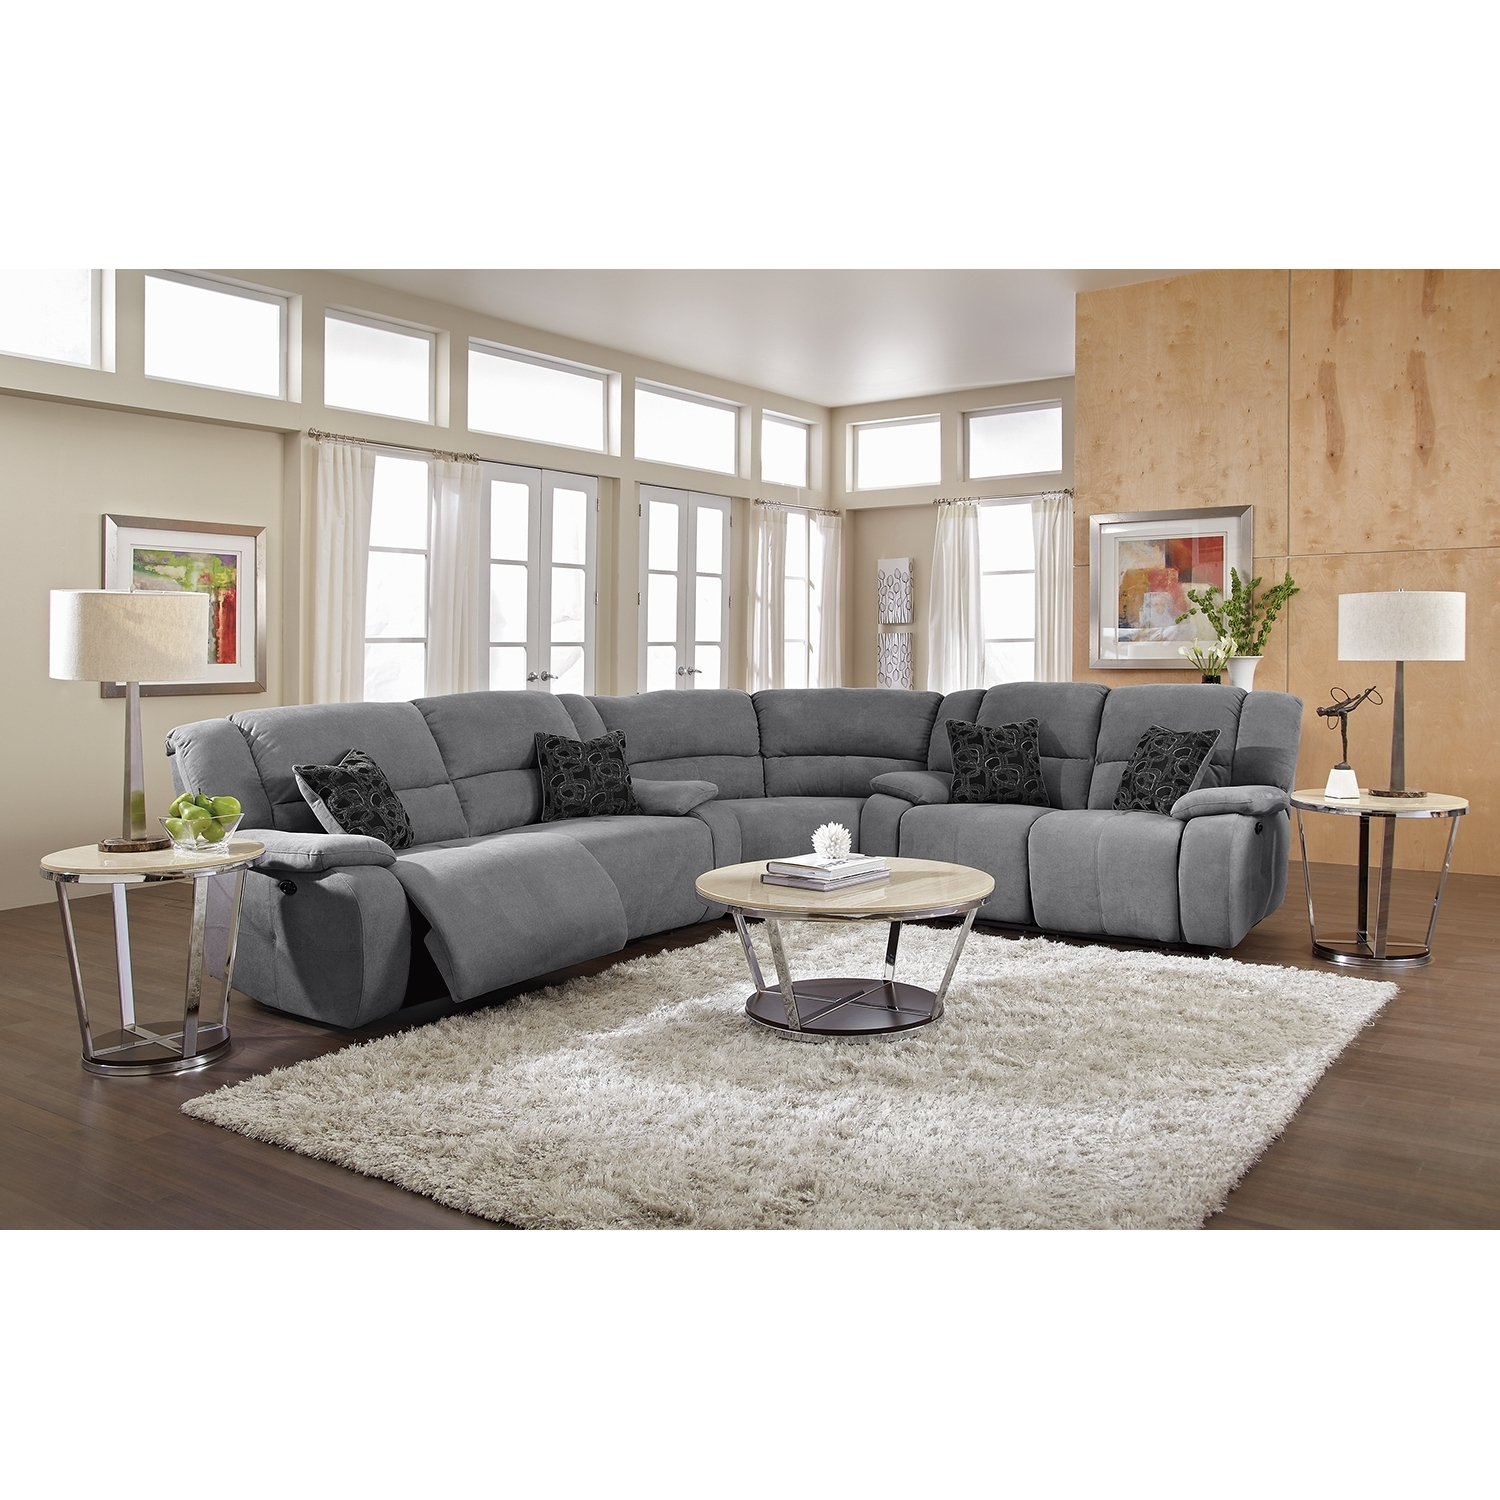 Reclining Sectional Leather Sectional Grey Sectional Sectionals Inside 2018 Grey Chaise Sectionals (View 6 of 15)